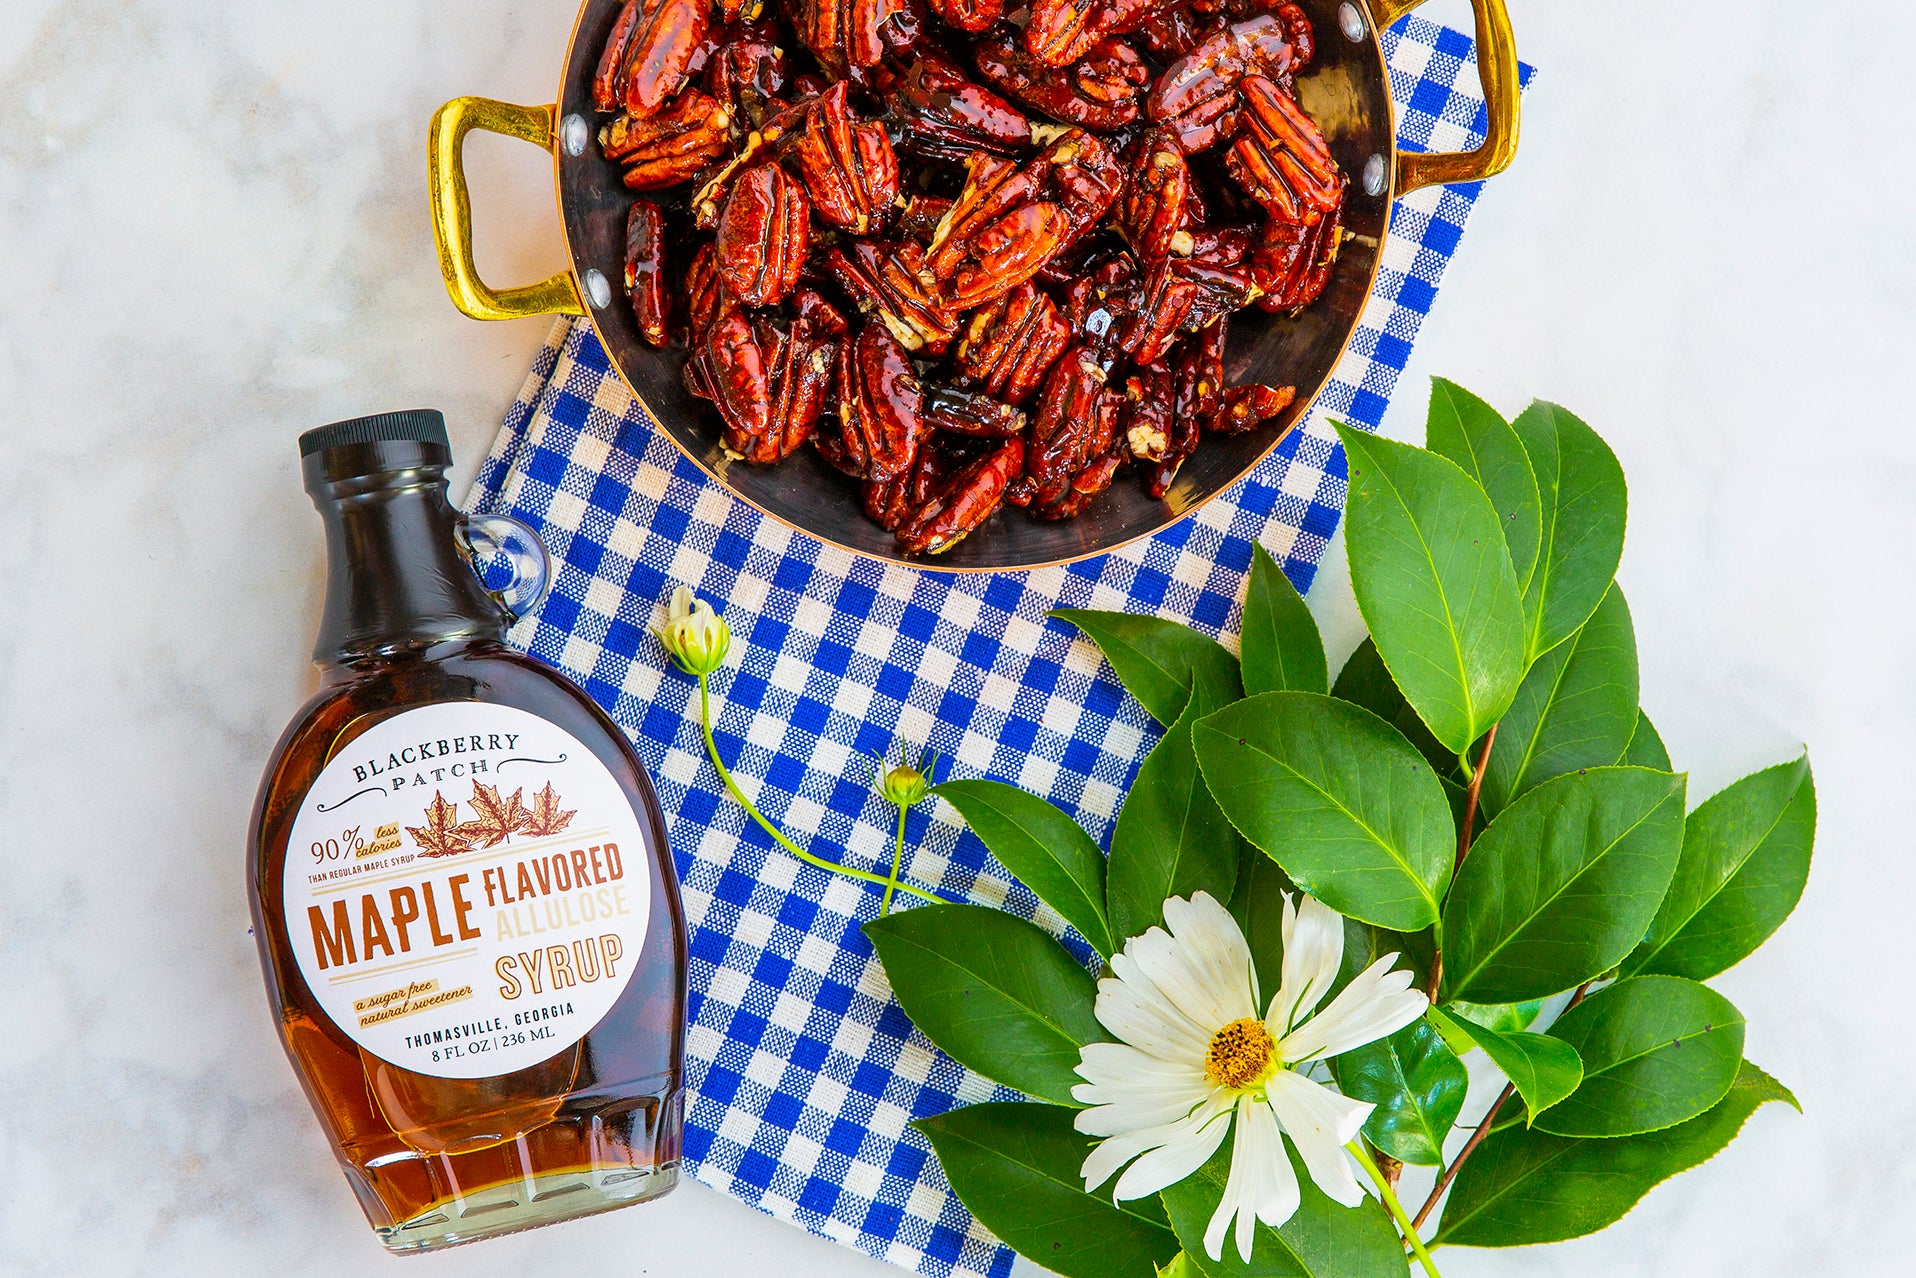 Recipe photo of Sugar Free Maple Candied Pecans using Blackberry Patch Maple Flavored Allulose Syrup